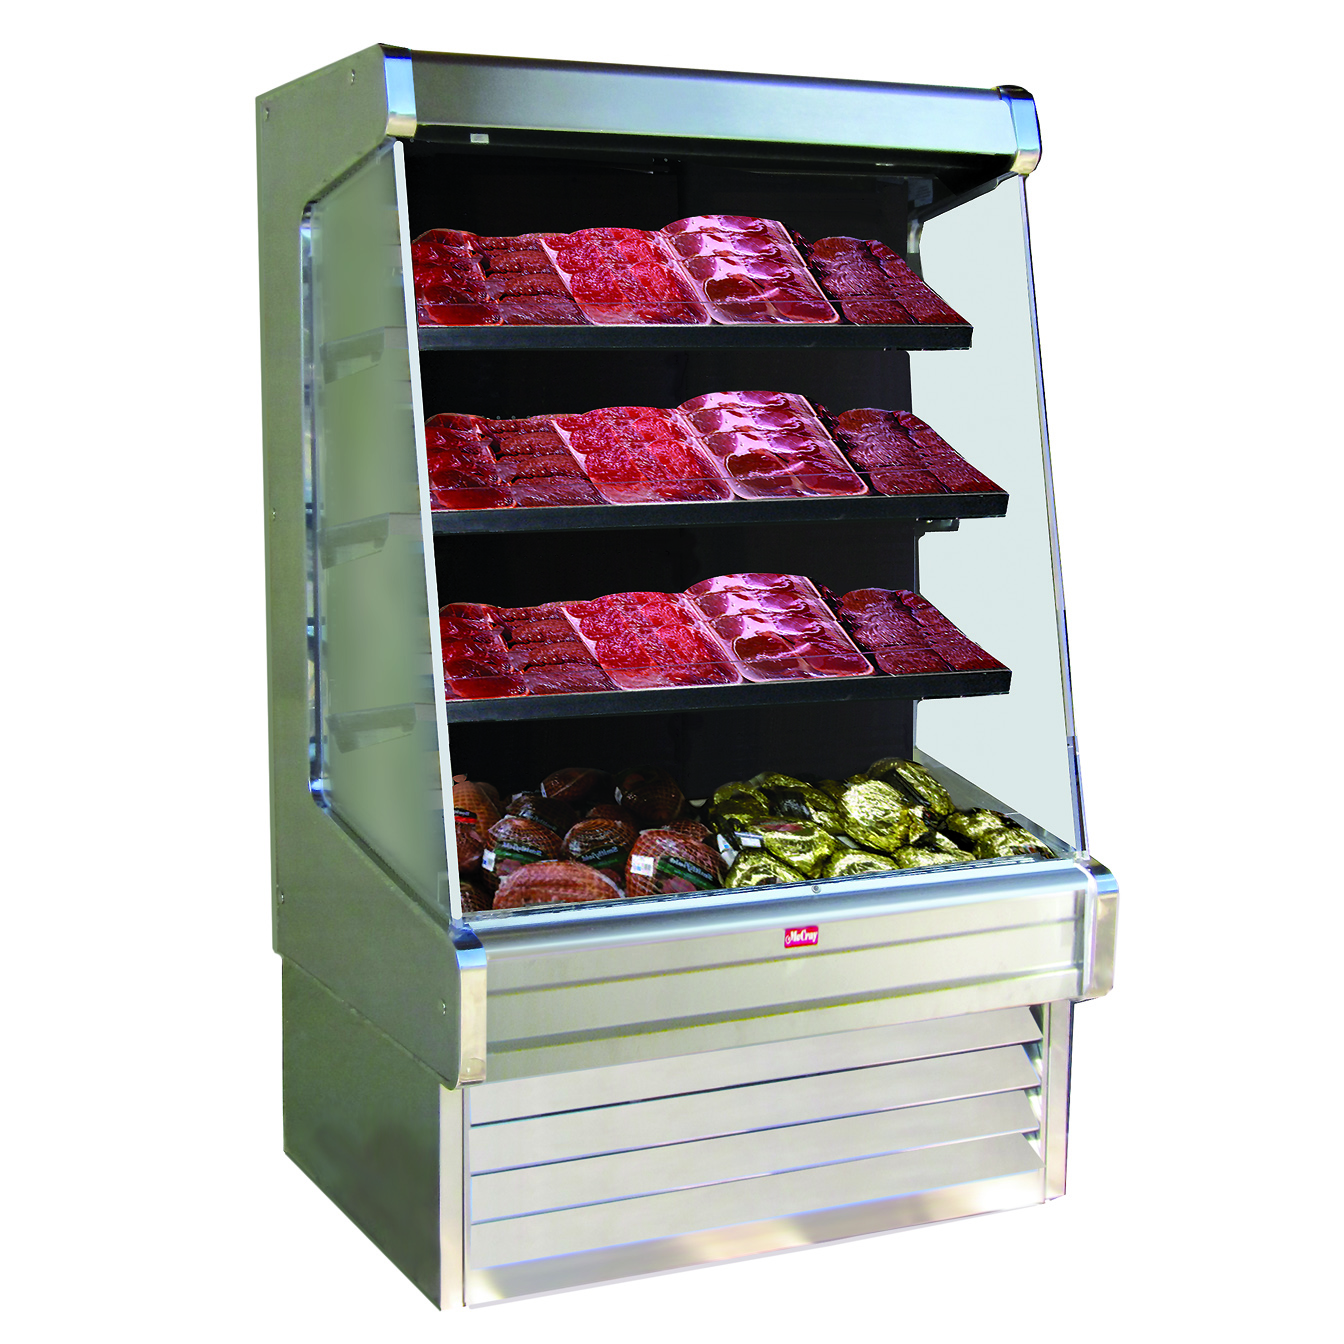 Howard-McCray R-OM30E-8-S-LED merchandiser, open refrigerated display